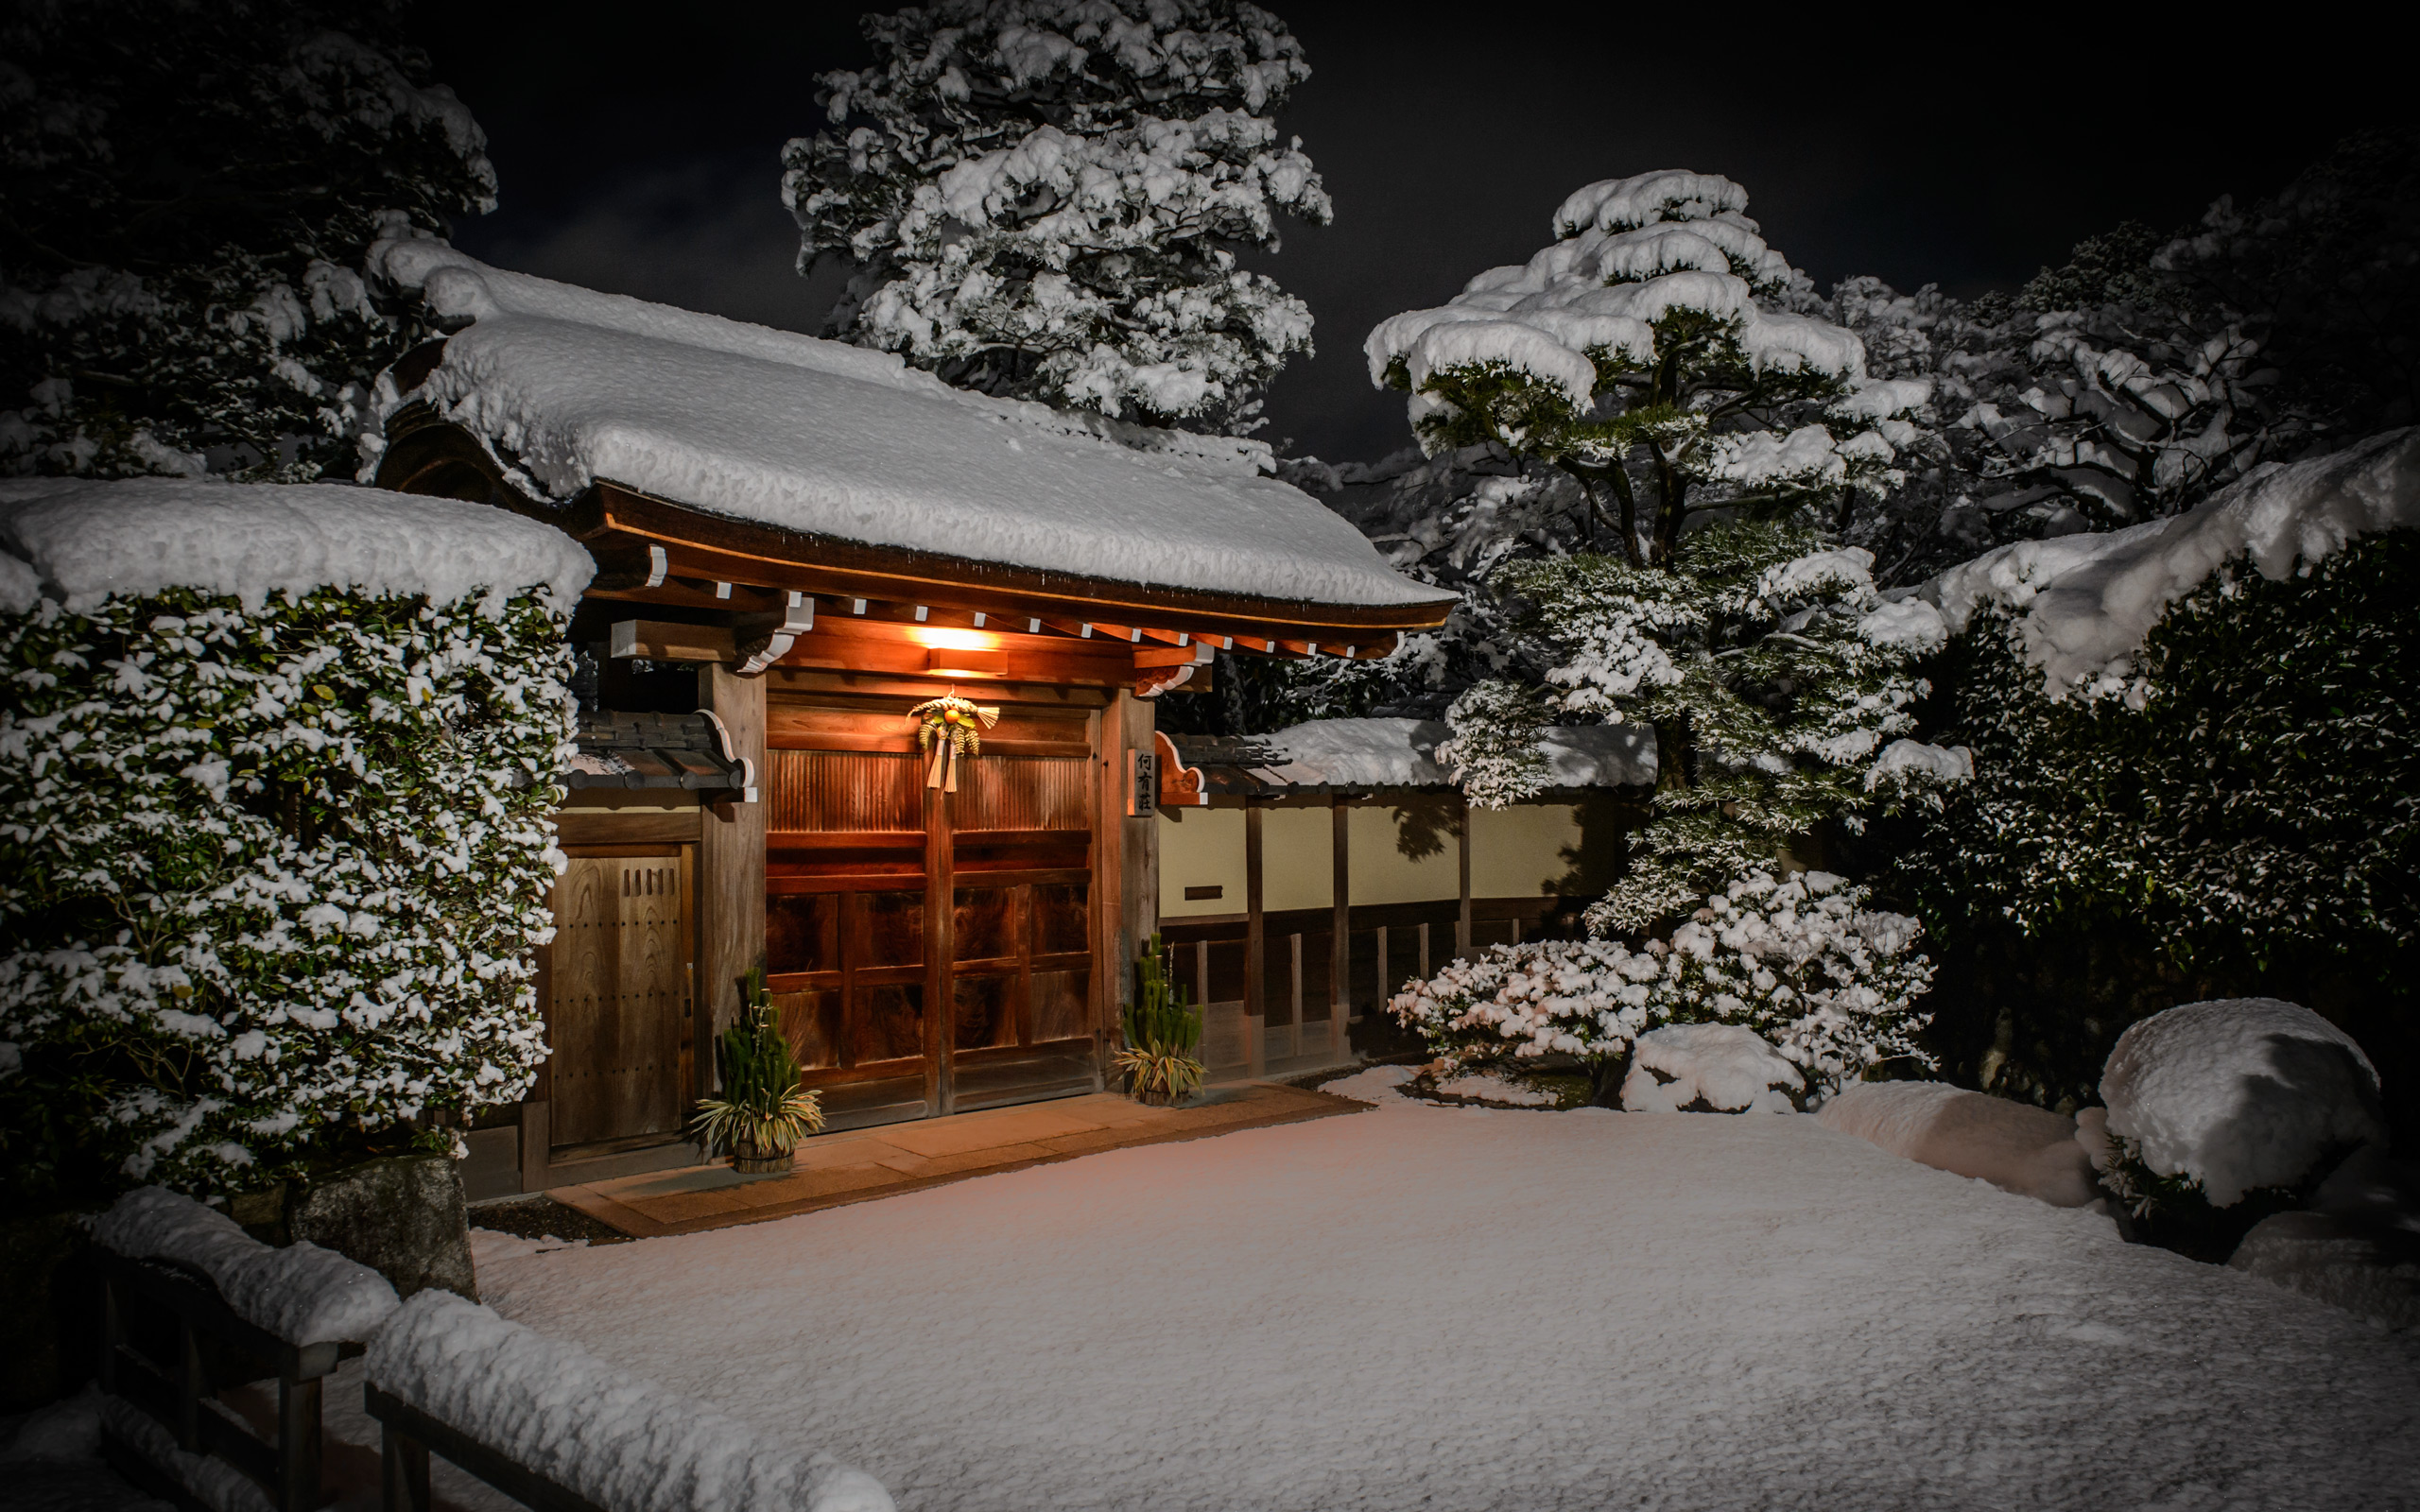 Snow Falling Desktop Wallpaper Jeffrey Friedl S Blog 187 Kyoto At Night During A Heavy Snow